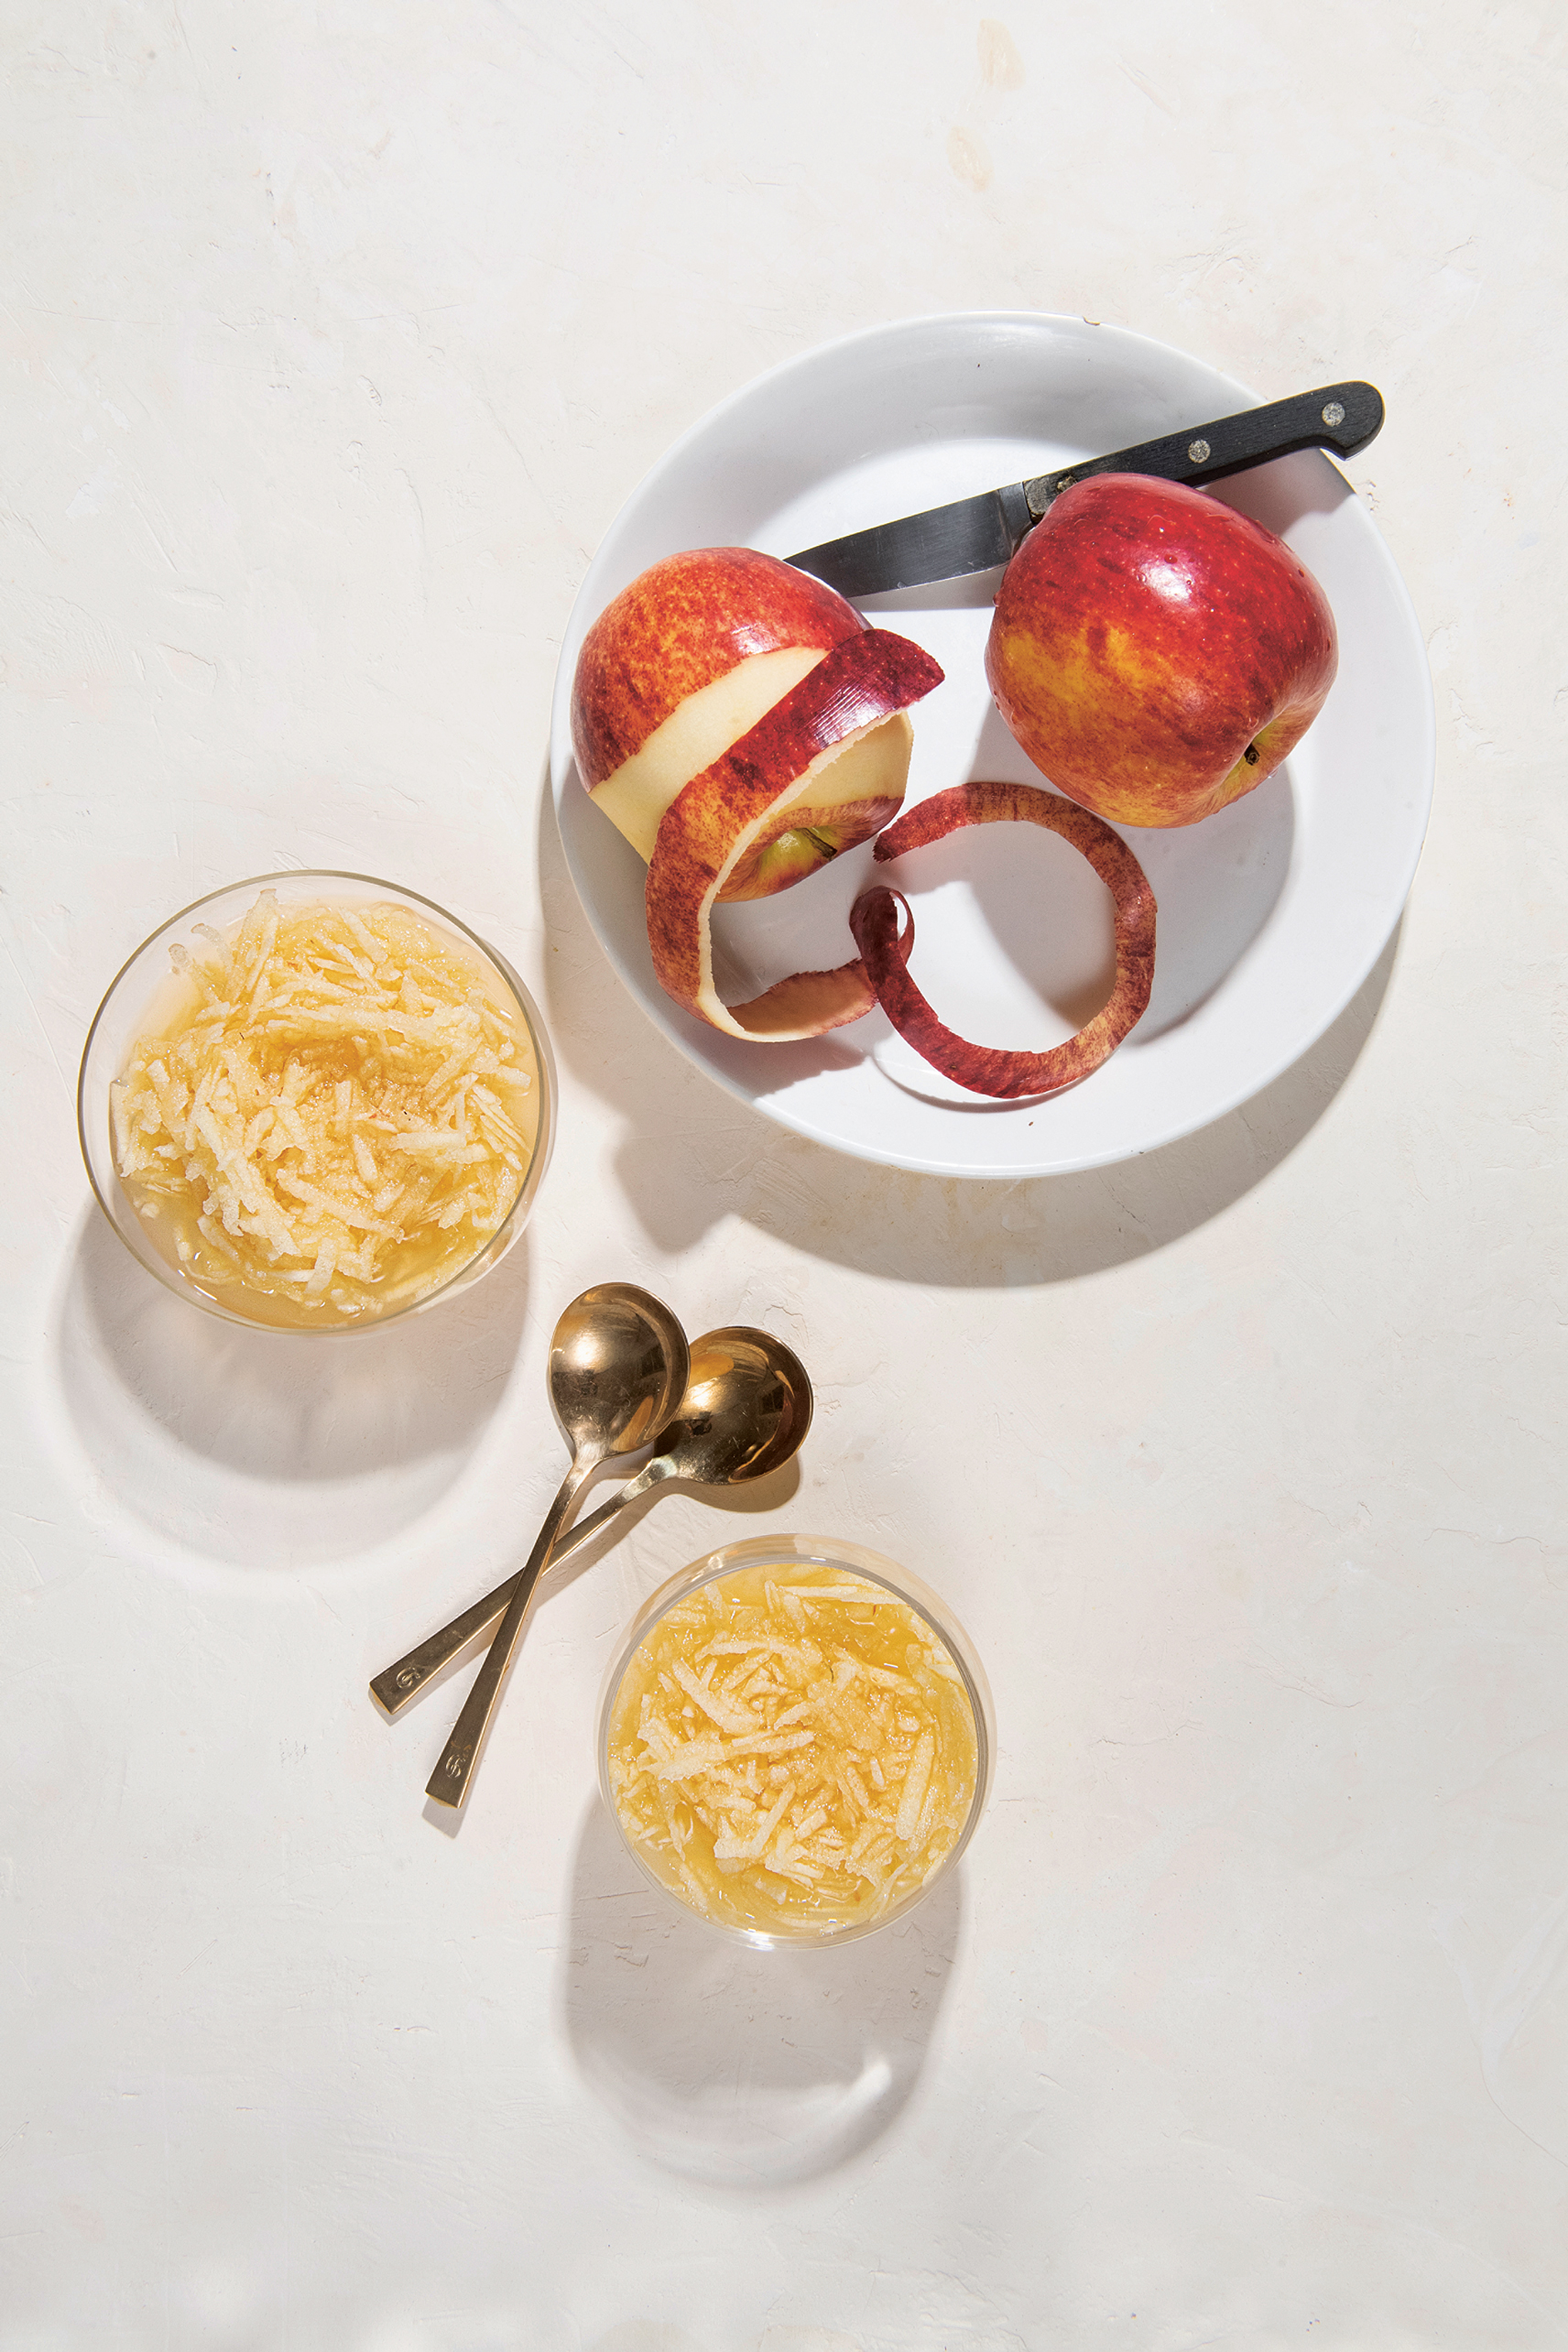 Chilled Apples with Rose WaterChilled Apples with Rose Water - The Jewish Cookbook